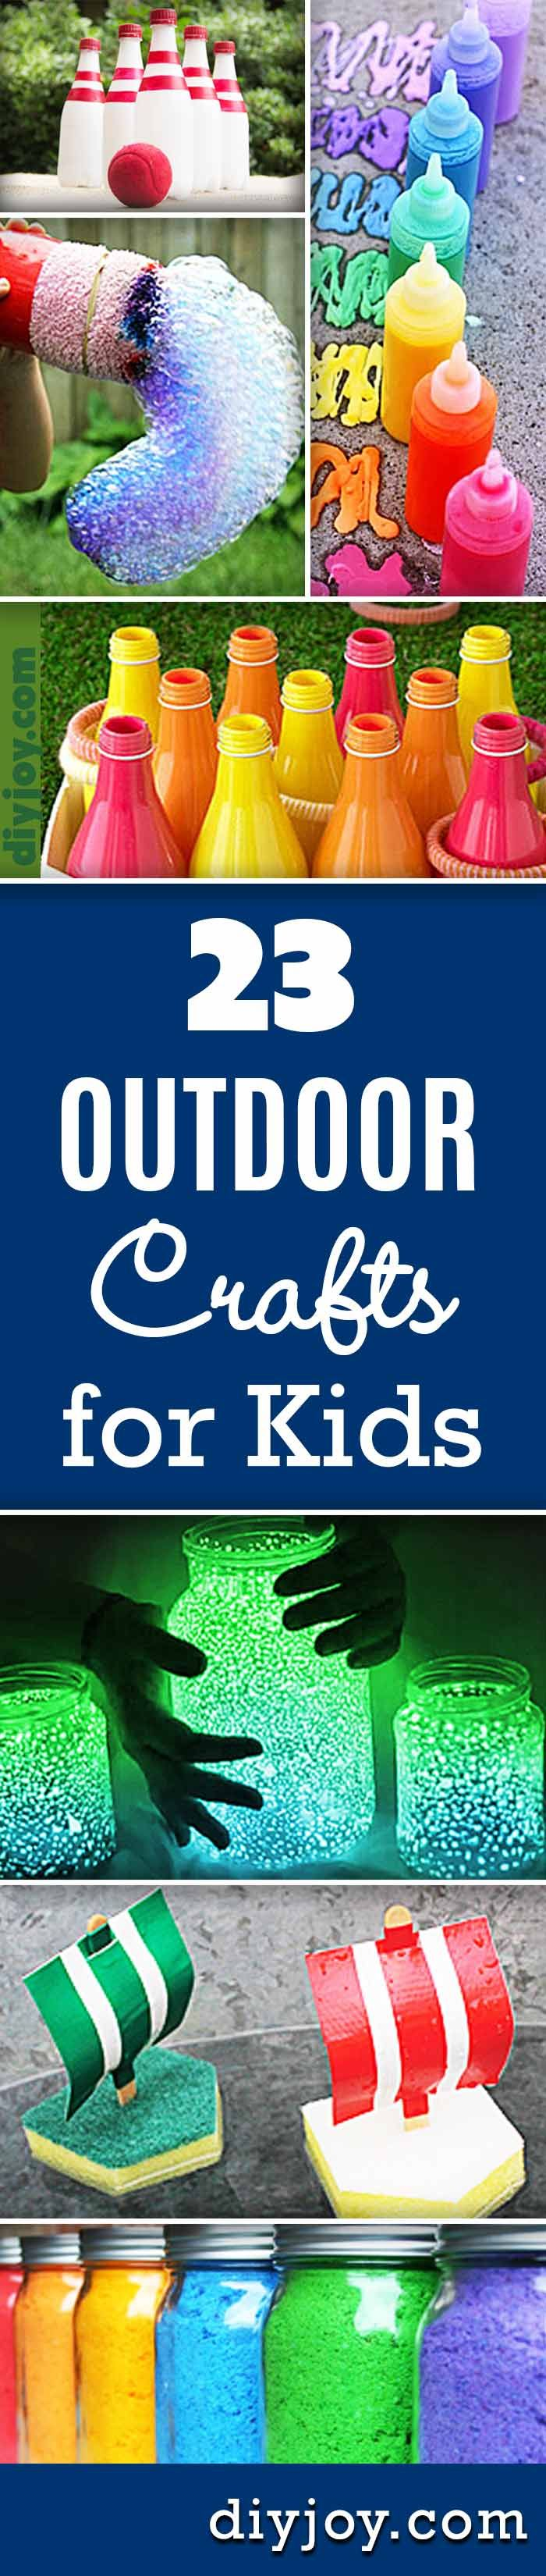 fun-outdoor-crafts-for-kids.jpg 700×3,300 pixeles